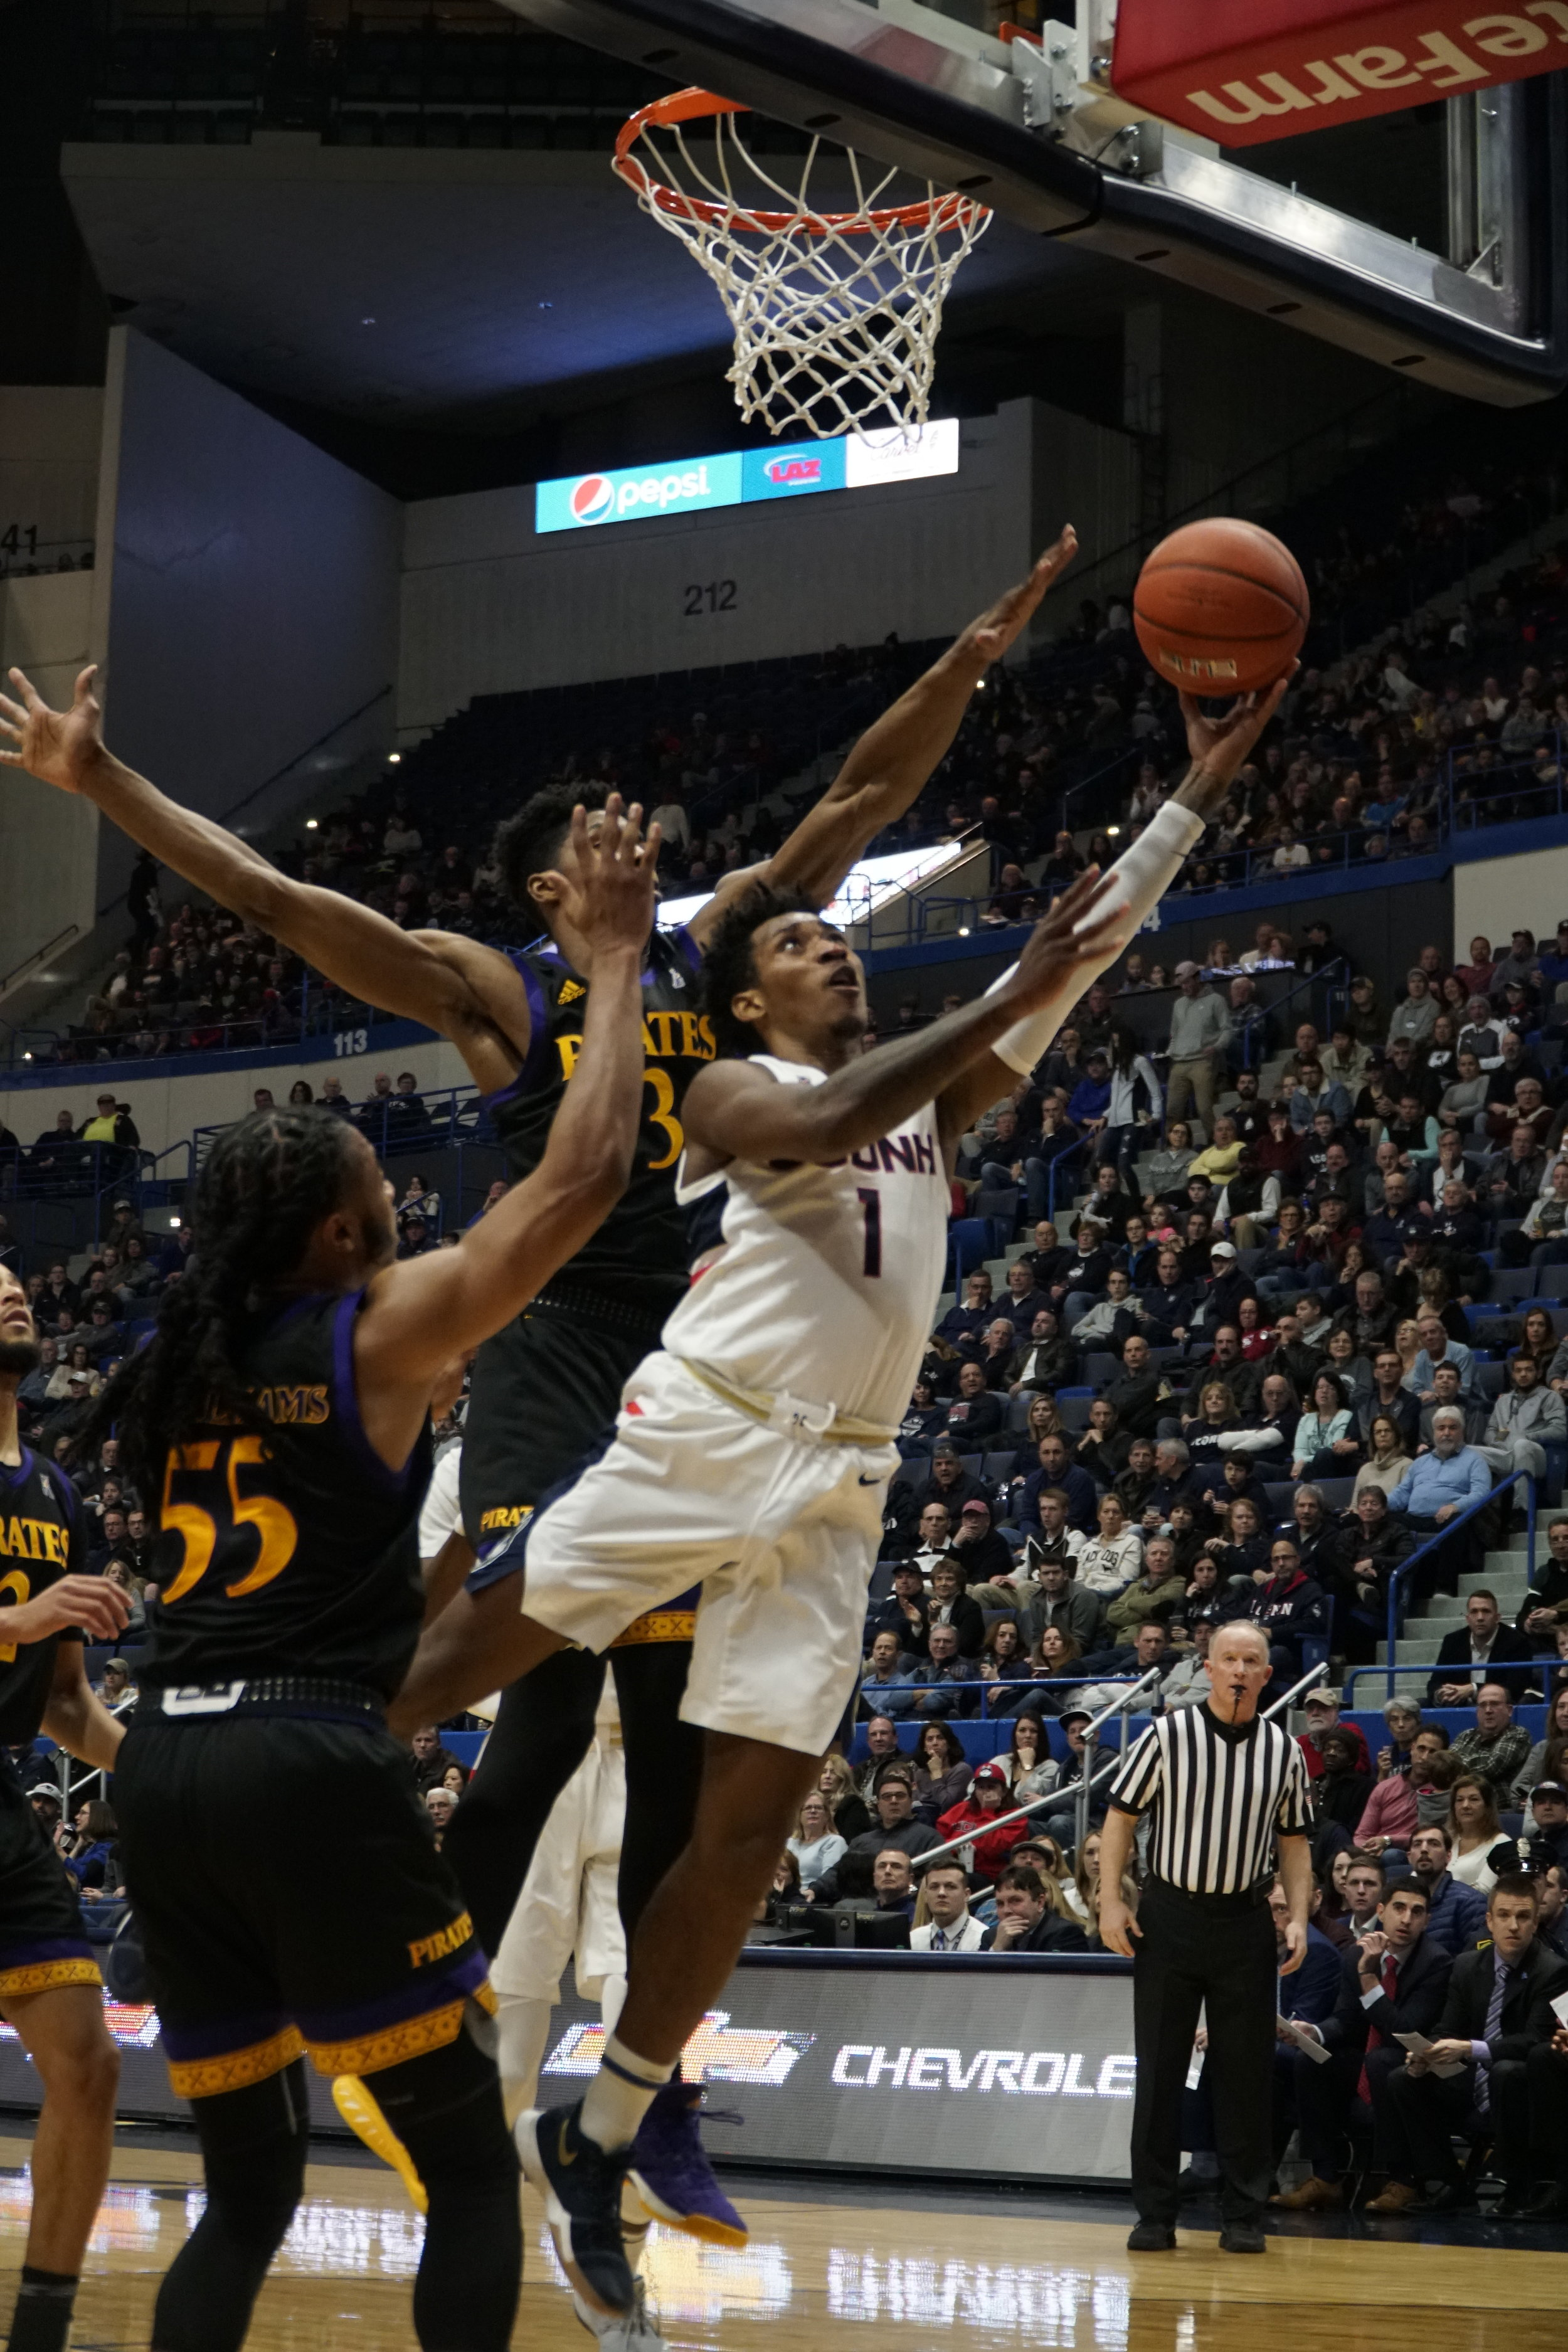 UConn's back court tandem of Christian Vitale and Alterique Gilbert have grown together in this program and are poised for a strong year.  Photo by Eric Wang / The Daily Campus.